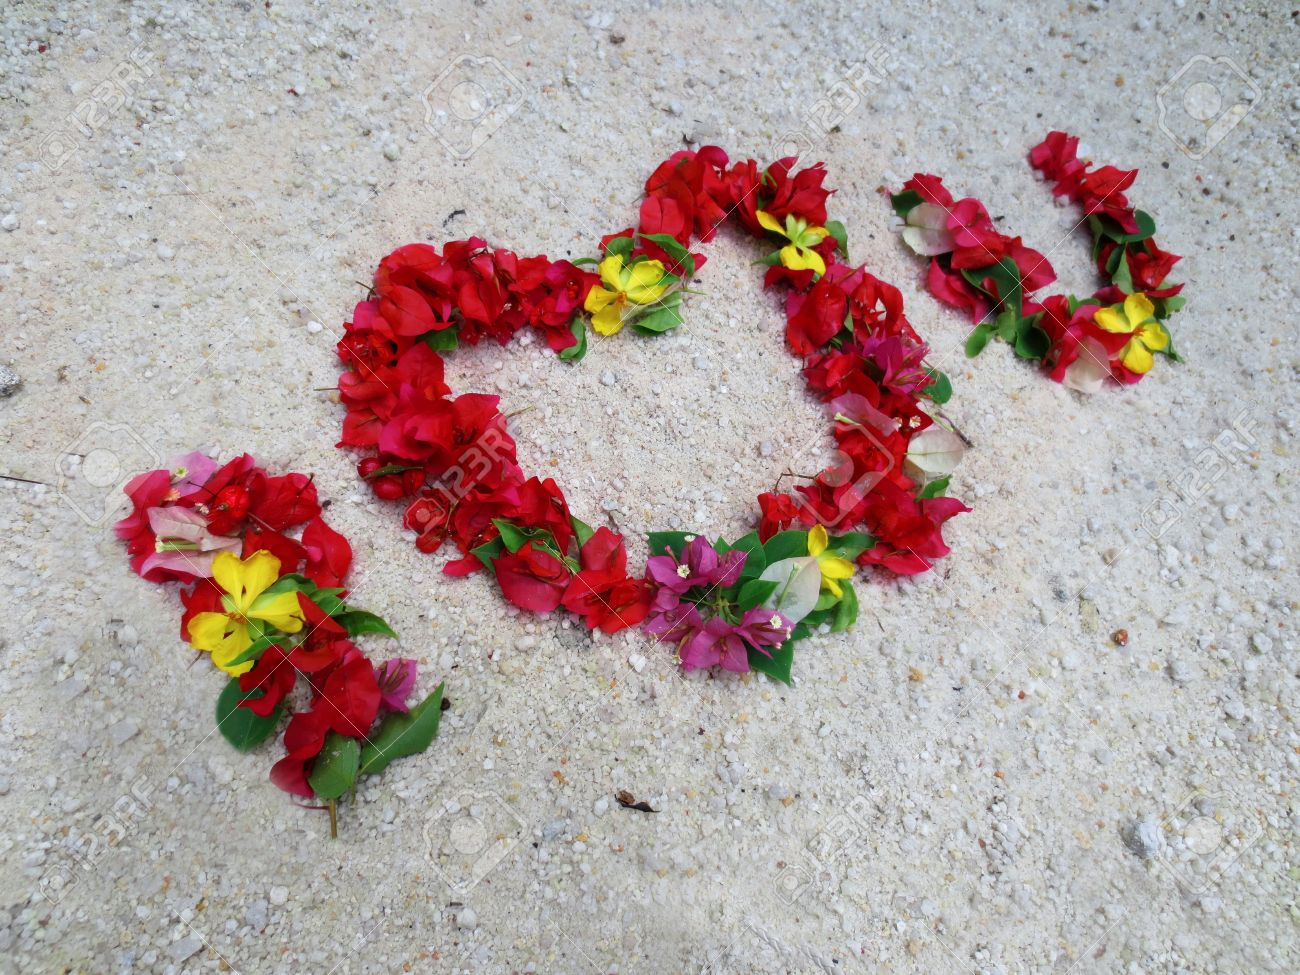 I Love You Flowers On The Sand Stock Photo Picture And Royalty Free